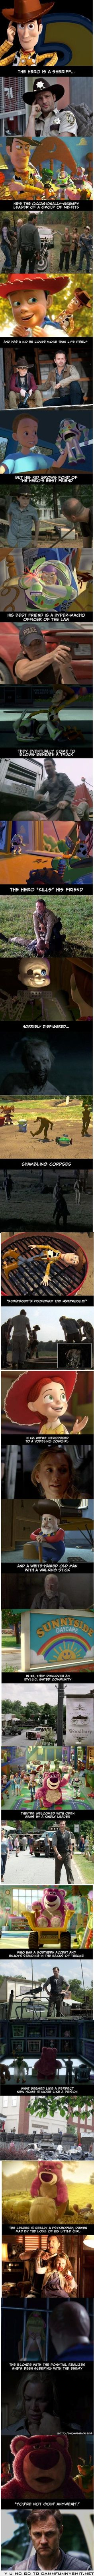 Well holy crap. The Walking Dead is basically Toy Story. And by basically I mean the exact same thing. Lol #mindblown